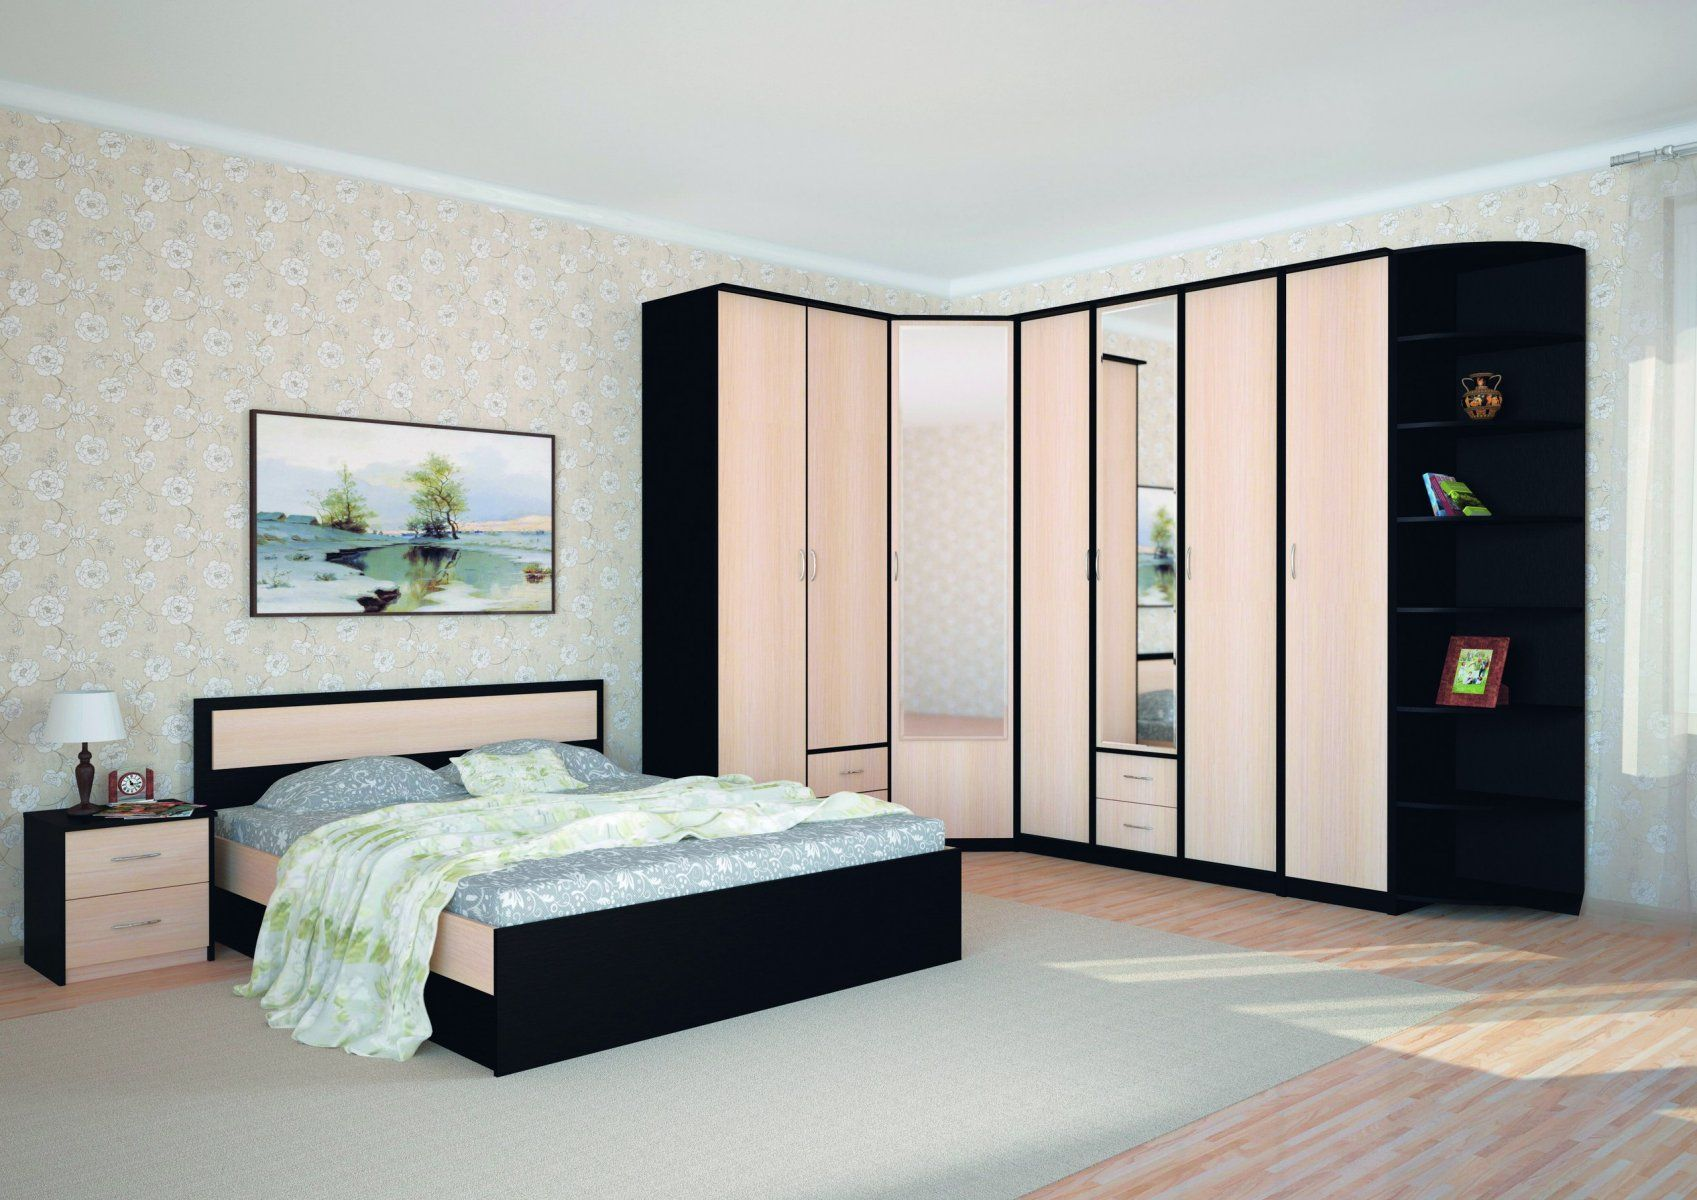 Black and wooden angular cabinet with mirrors and low platform bed with black sides for casual bedroom